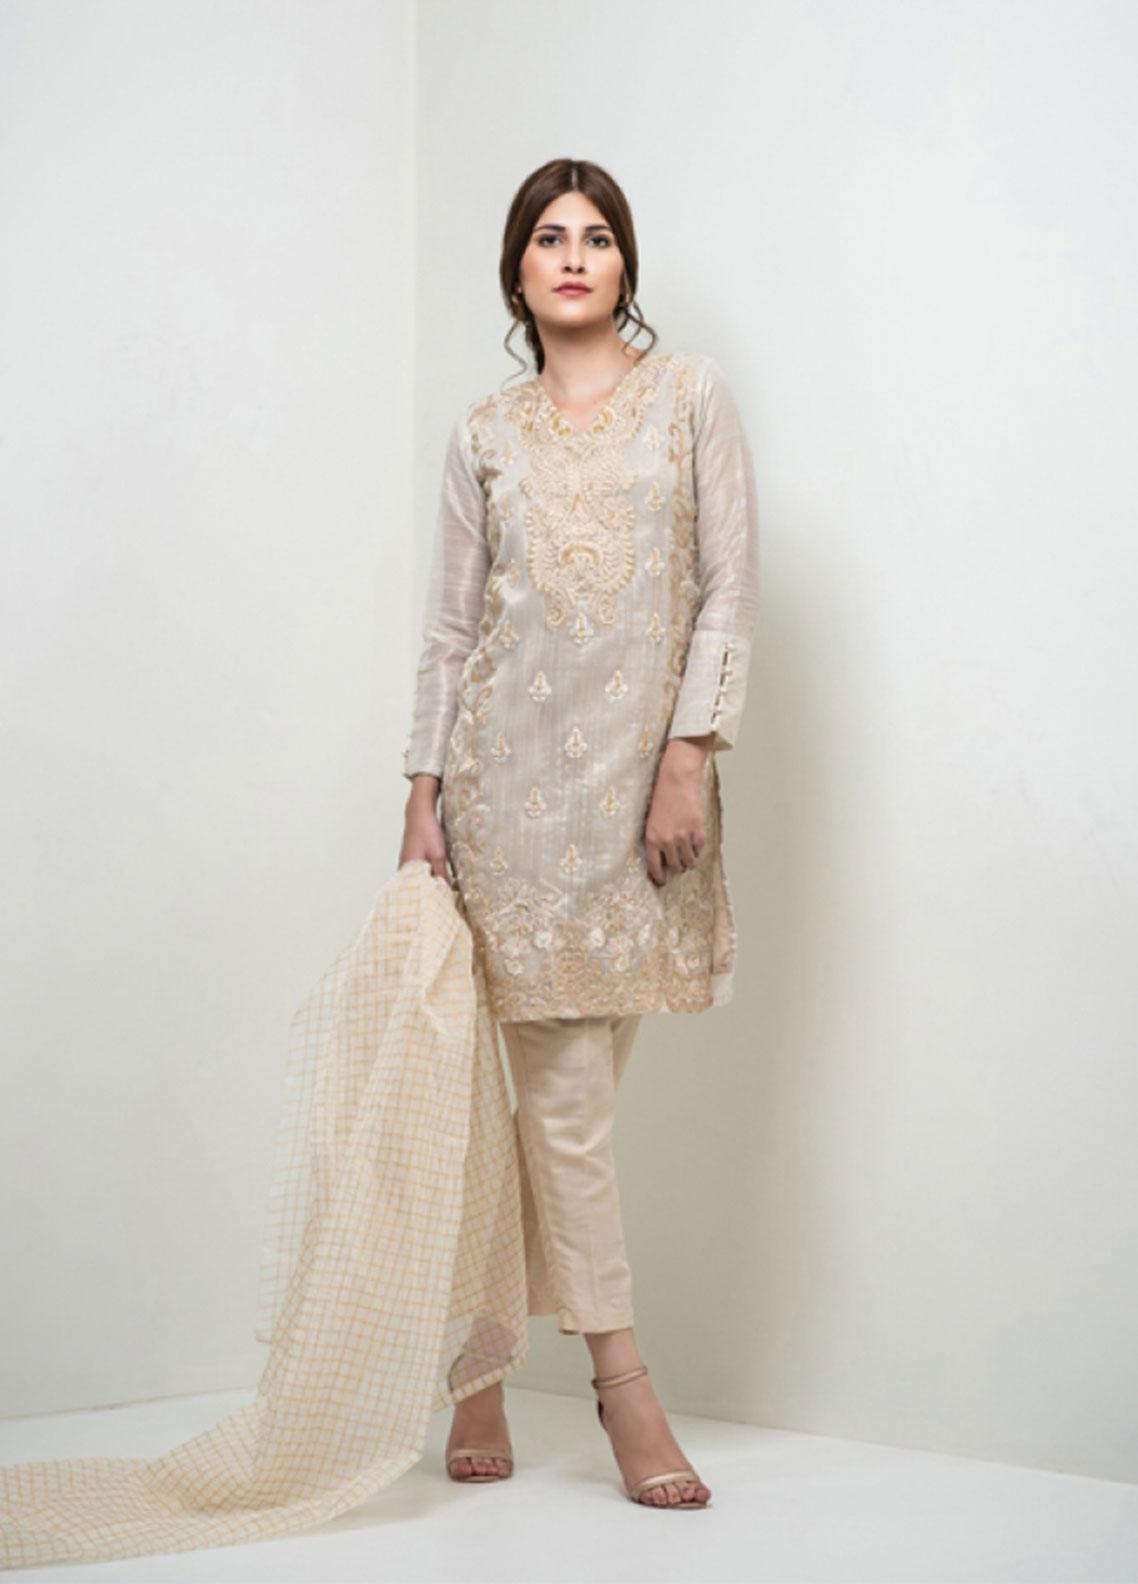 Formal Engagement Dresses Collection for Girl